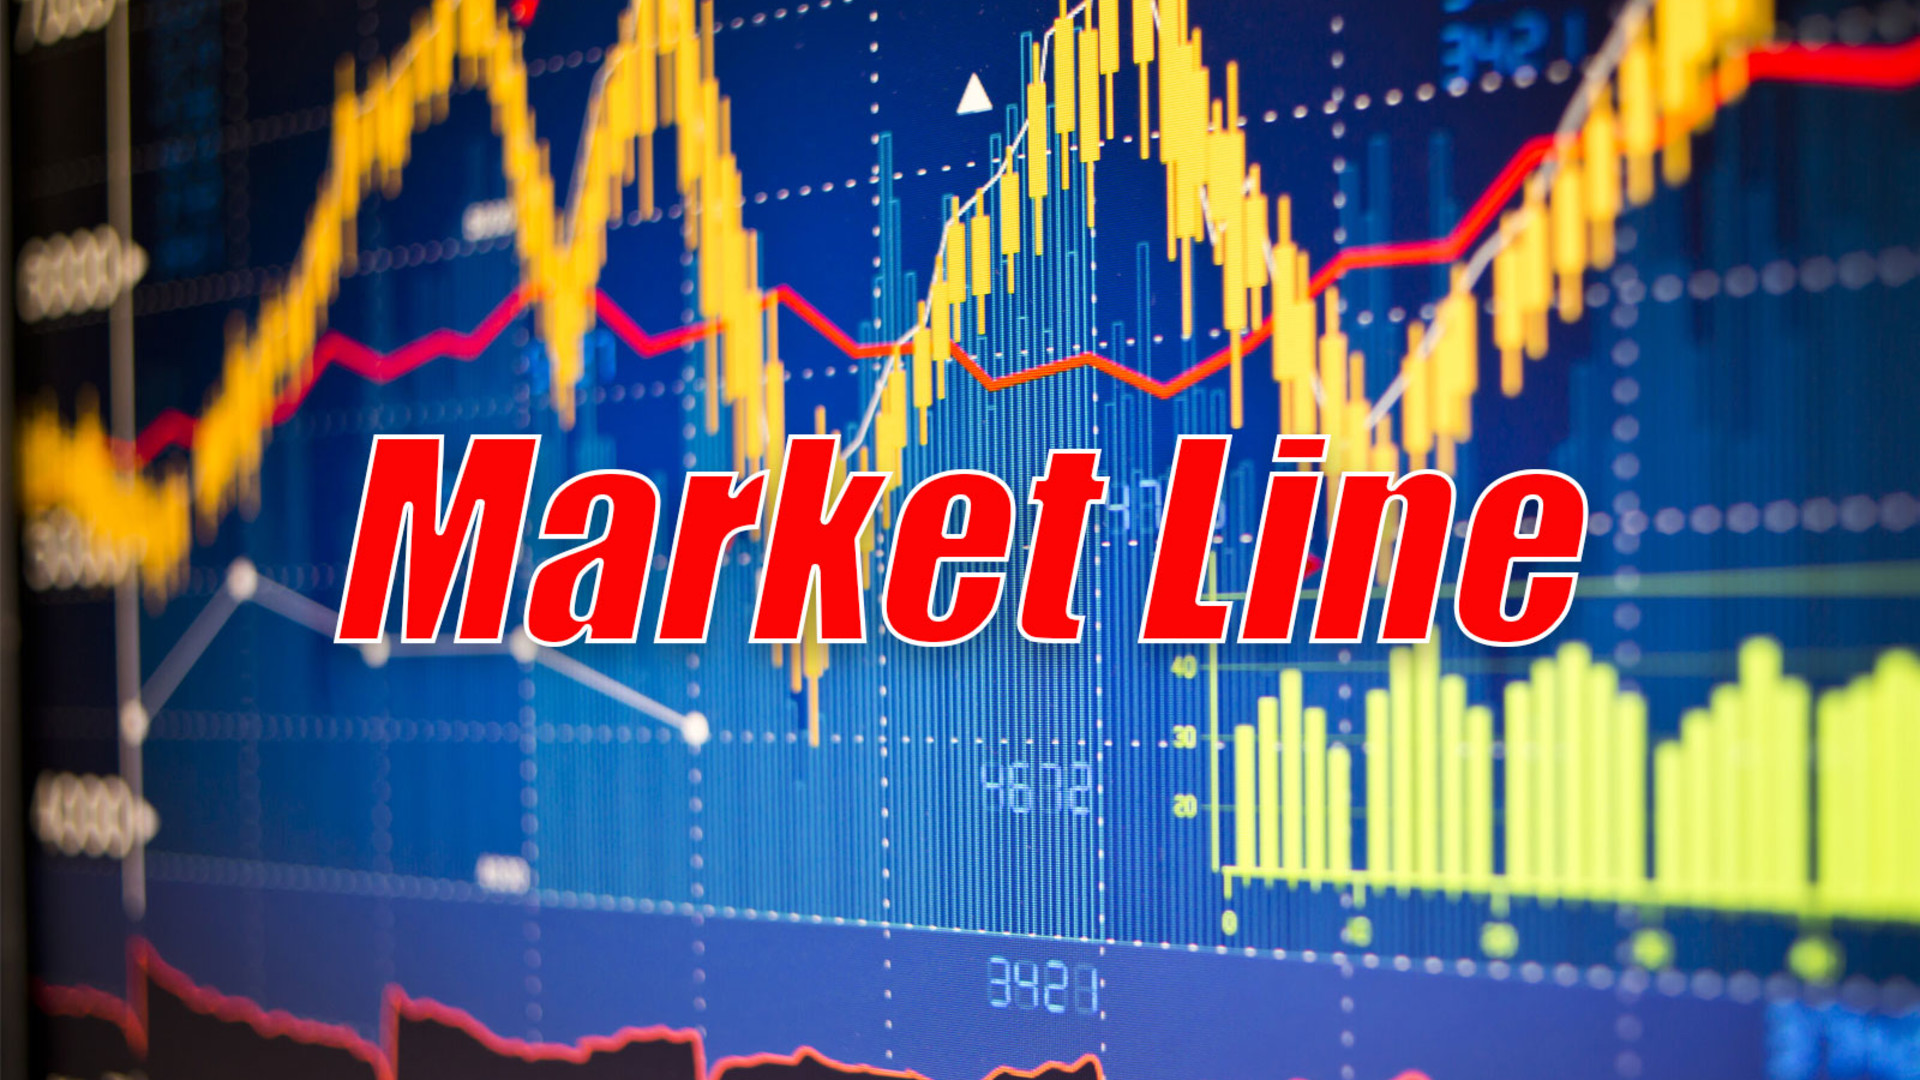 Marketline Report for Tuesday, June 25th